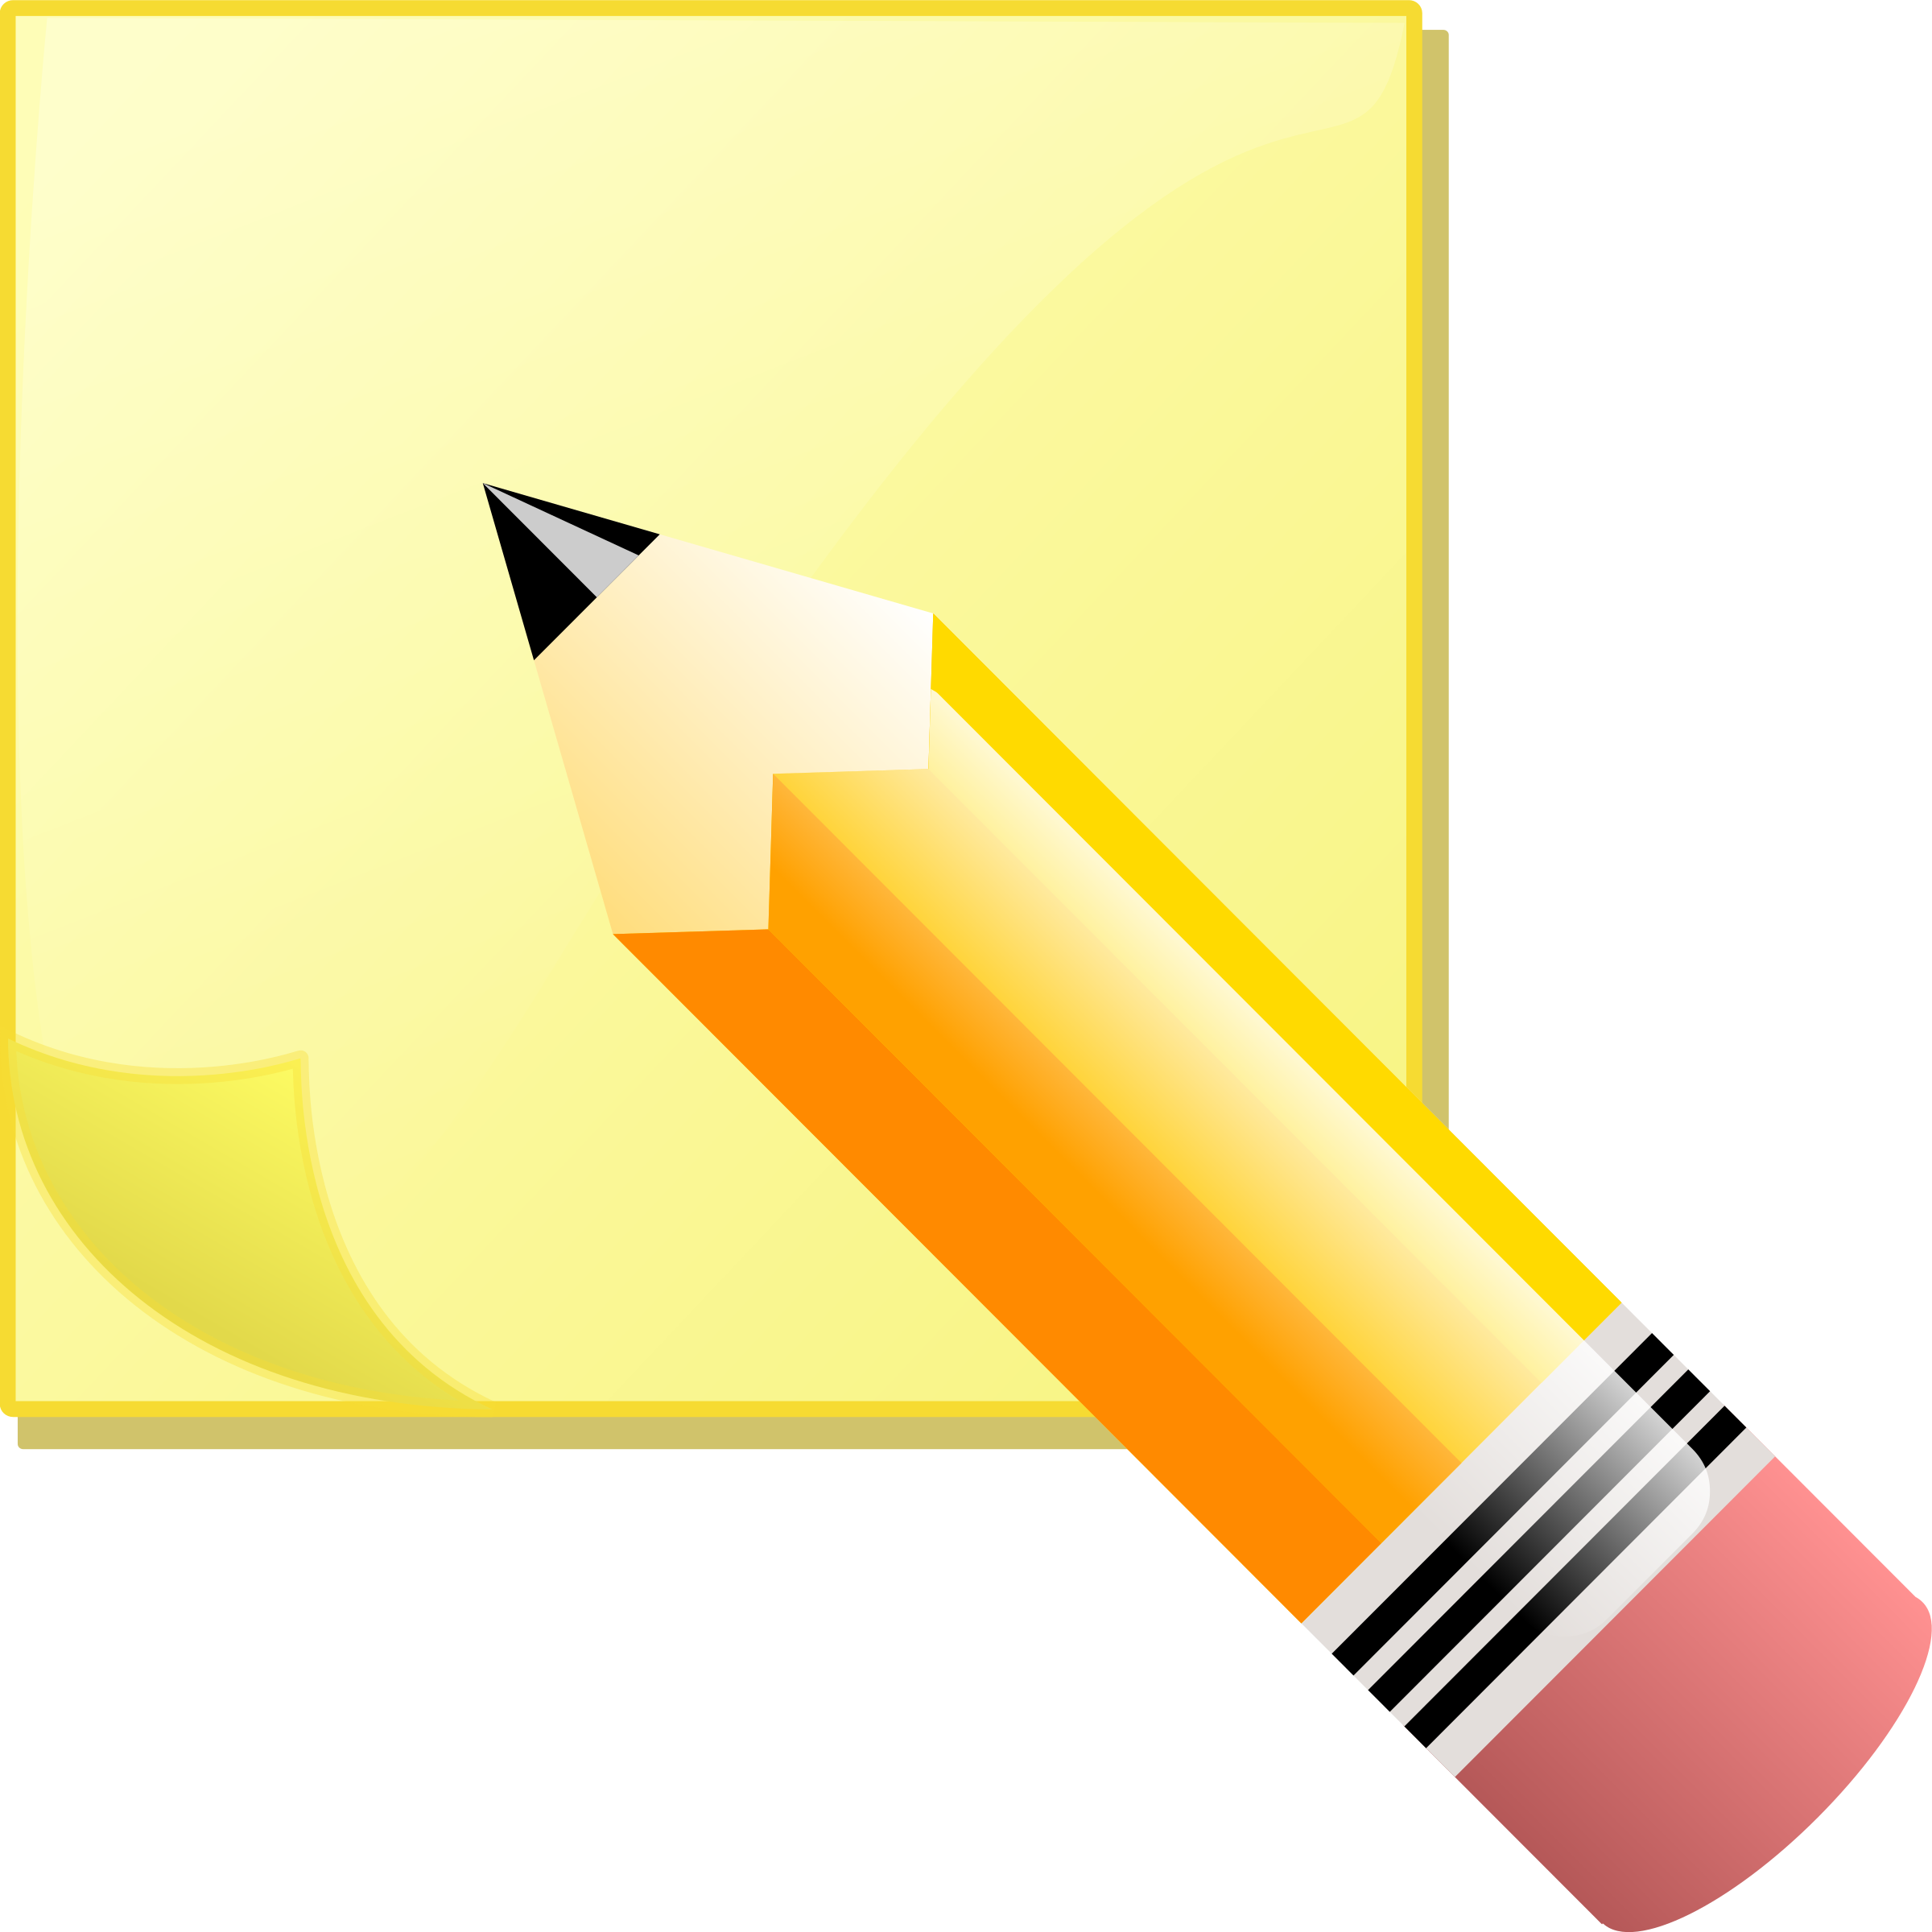 Kid clipart pencil. Sticky note pad and